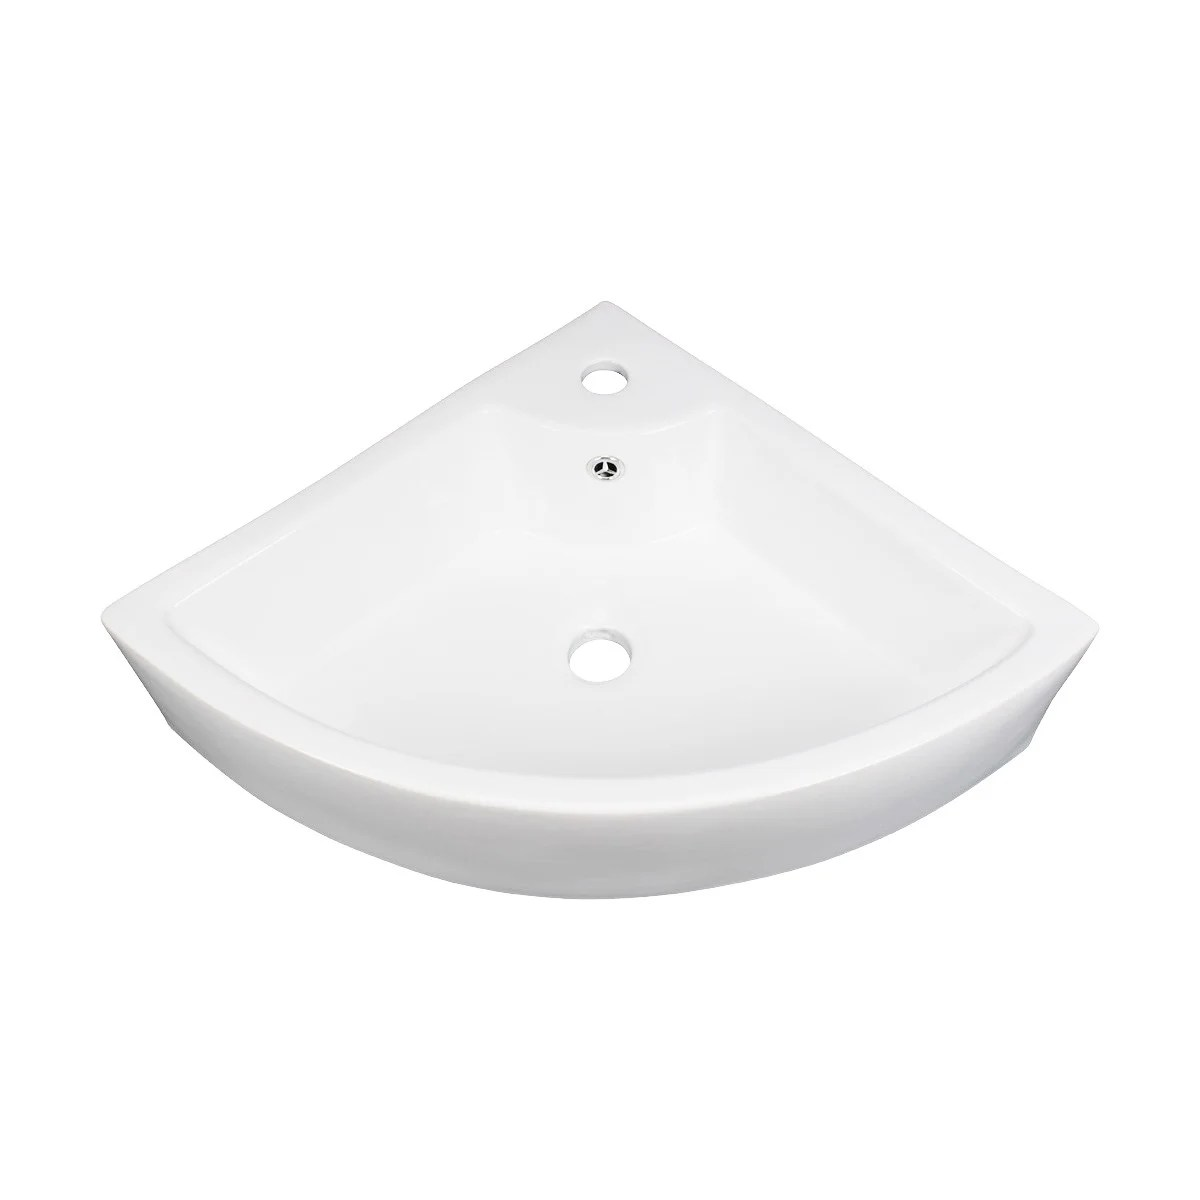 Shop Black Friday Deals On Small Bathroom Corner Sink Above Counter Angled Vessel Faucet Hole And Overflow Cream Overstock 12636470